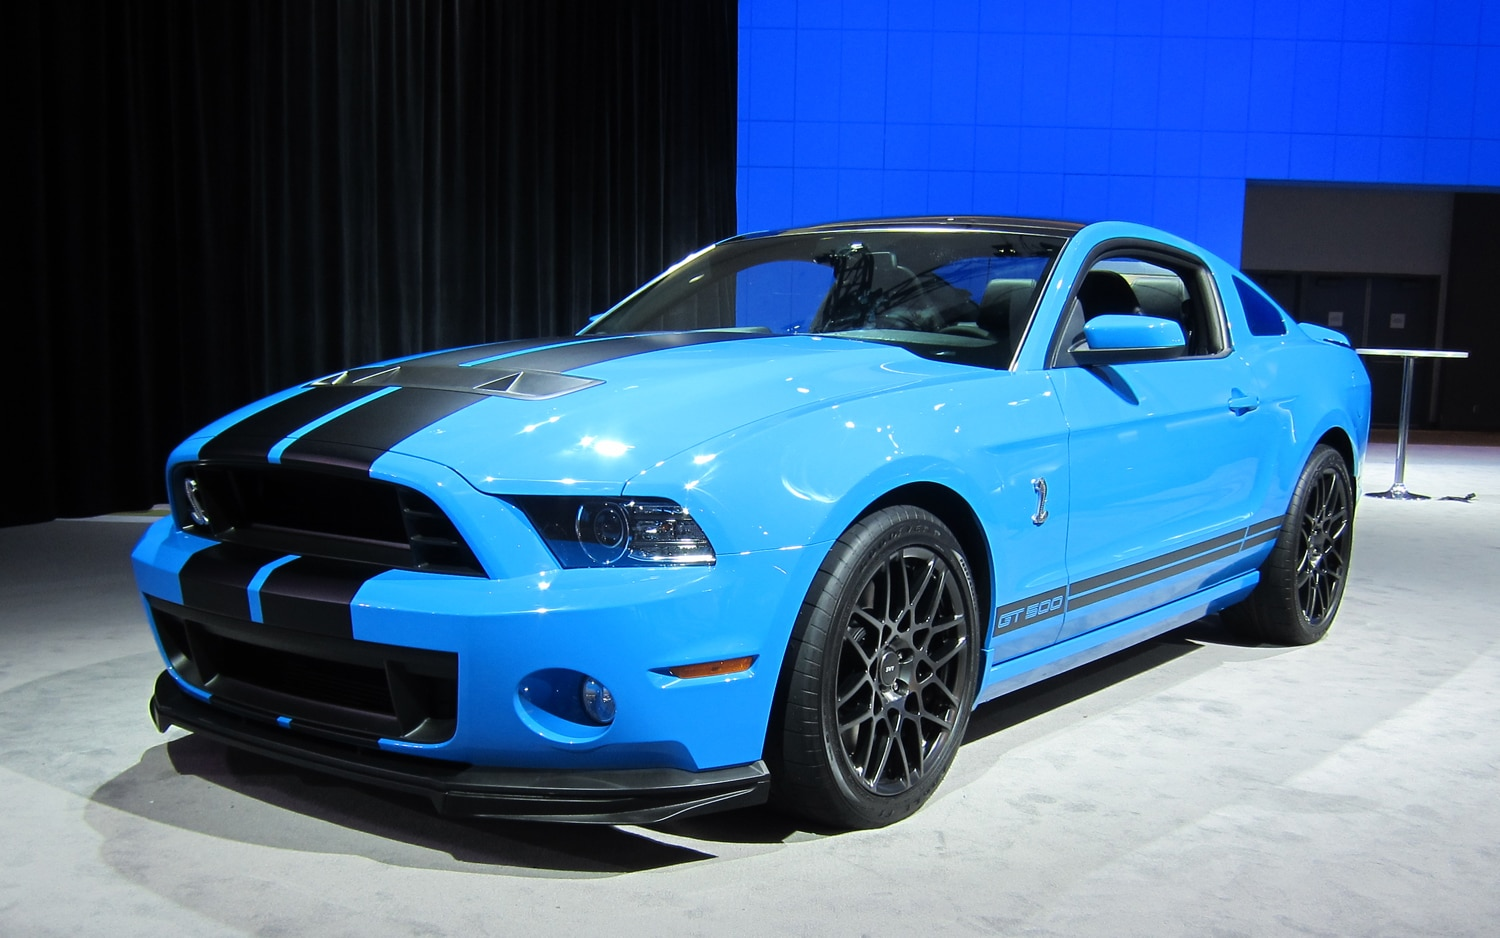 los angeles 2011 ford unveils refreshed 2013 mustangs 650 hp shelby gt500. Black Bedroom Furniture Sets. Home Design Ideas